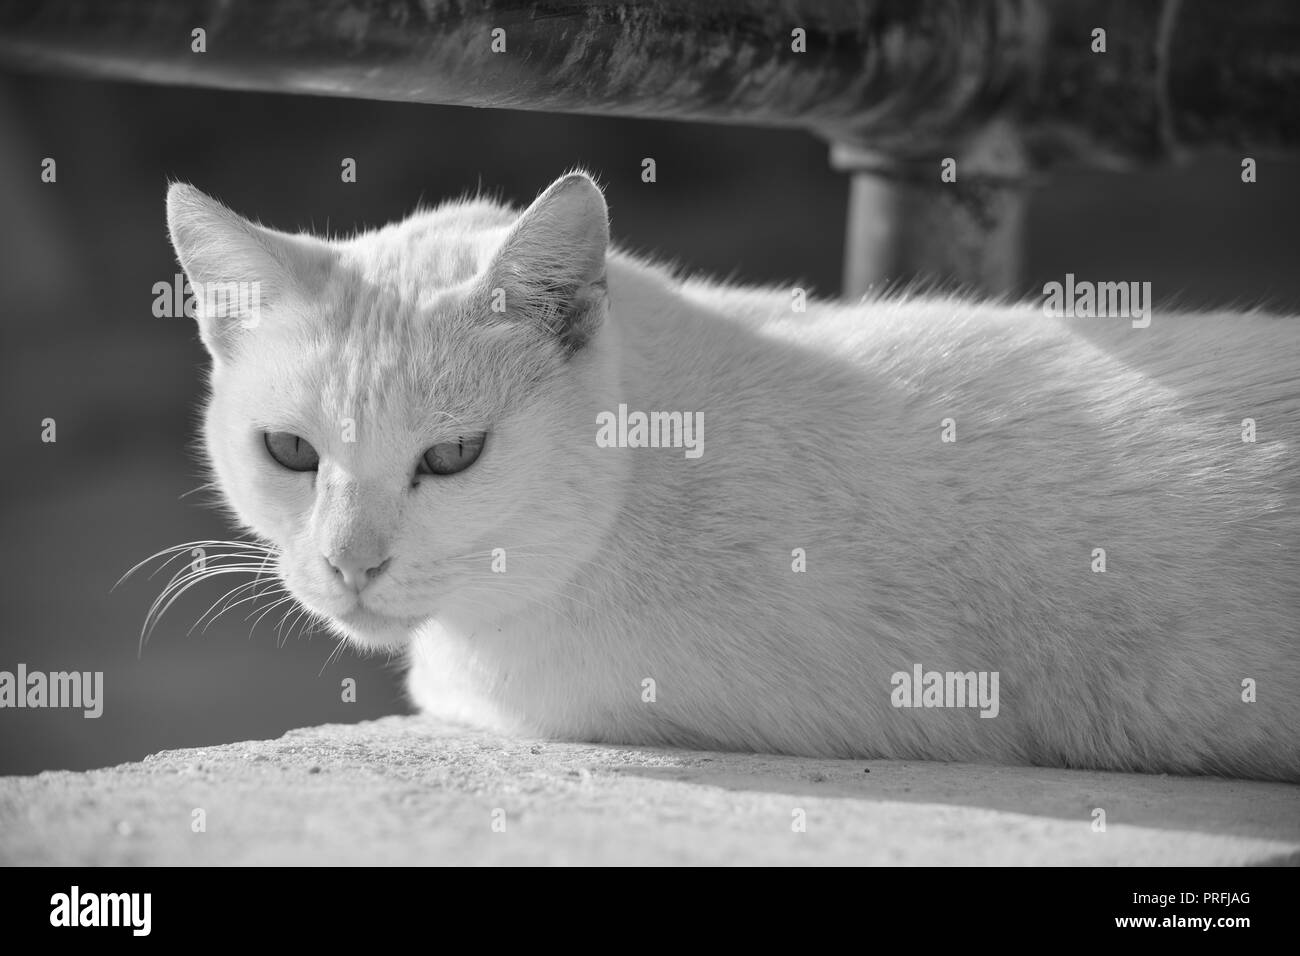 A white cat, resting on a low wall under a rusty metal railing in Gozo, Malta. Feral cat, adapted to living outside. Photo in black and white. - Stock Image